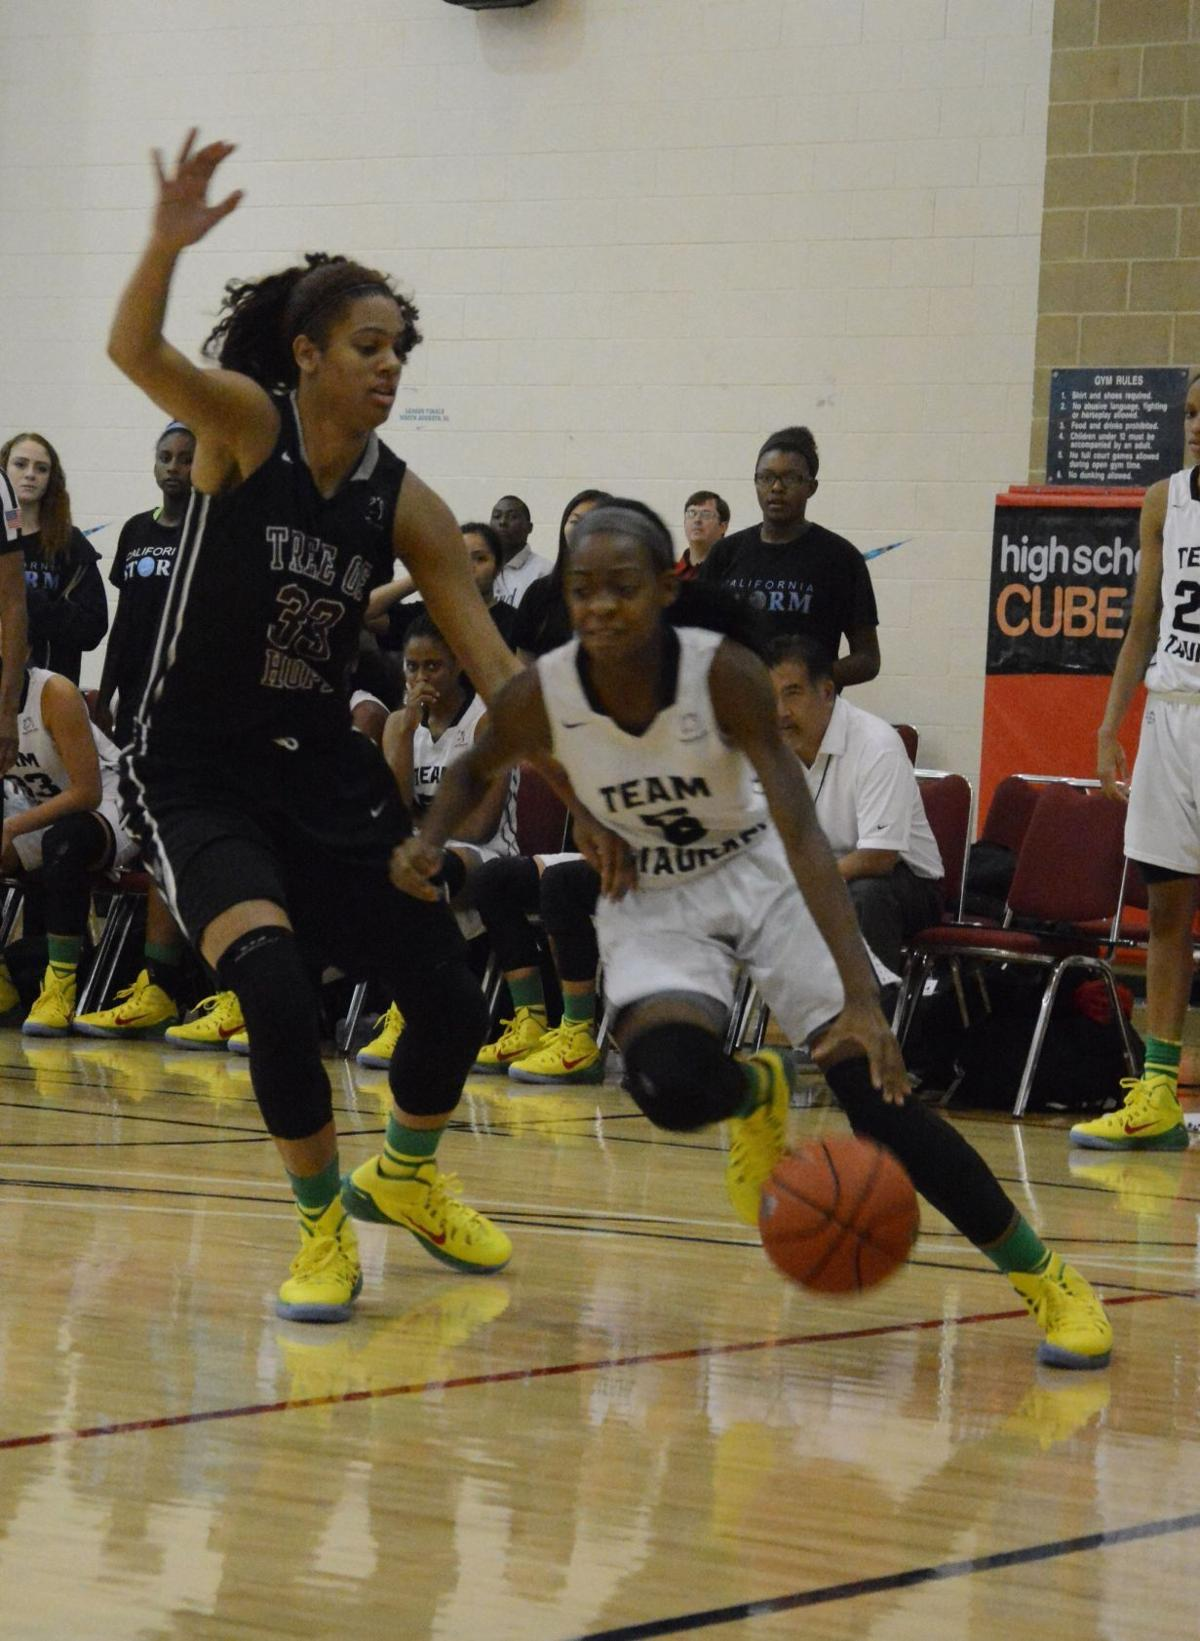 Nike Nationals 2014 Title Game